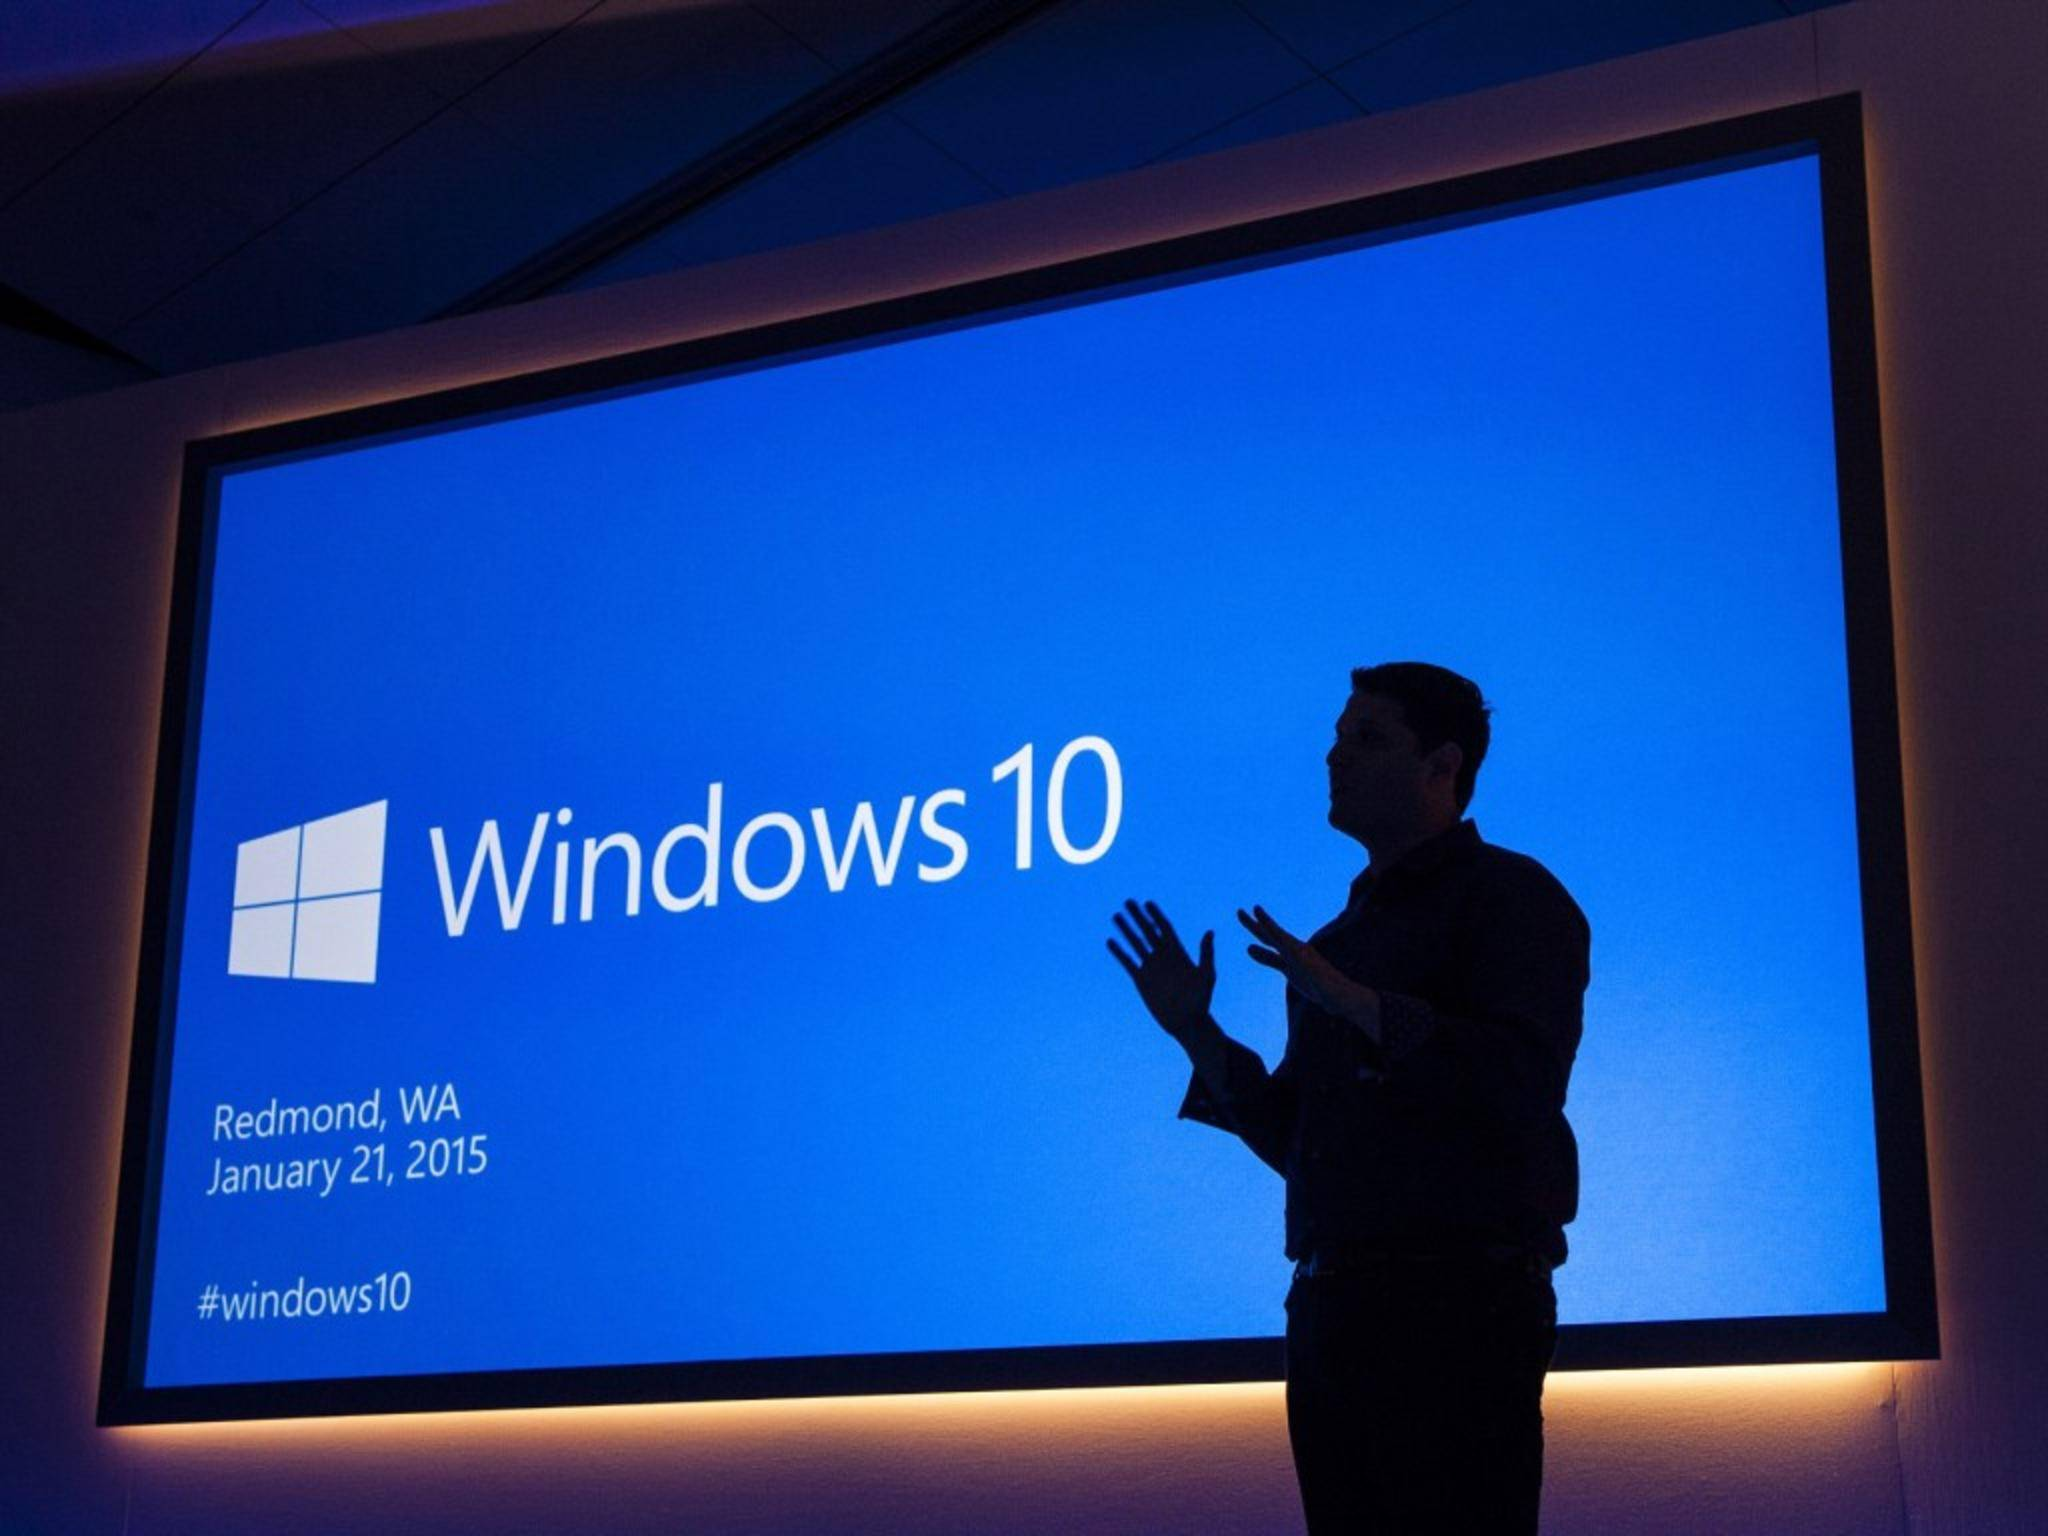 Das letzte Windows: Windows 10.